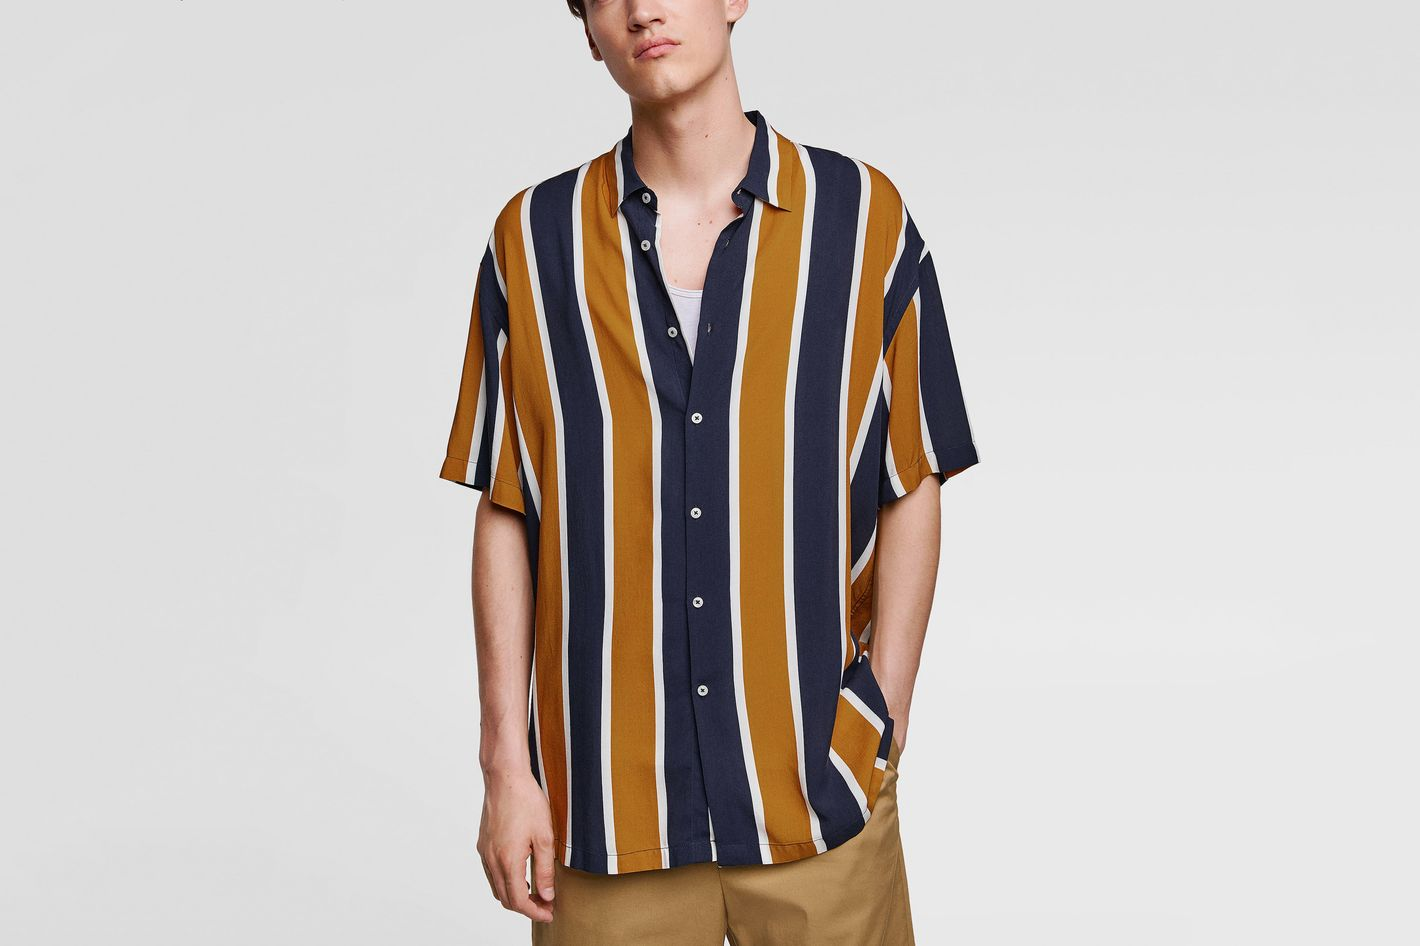 Flowy Shirt with Vertical Stripes